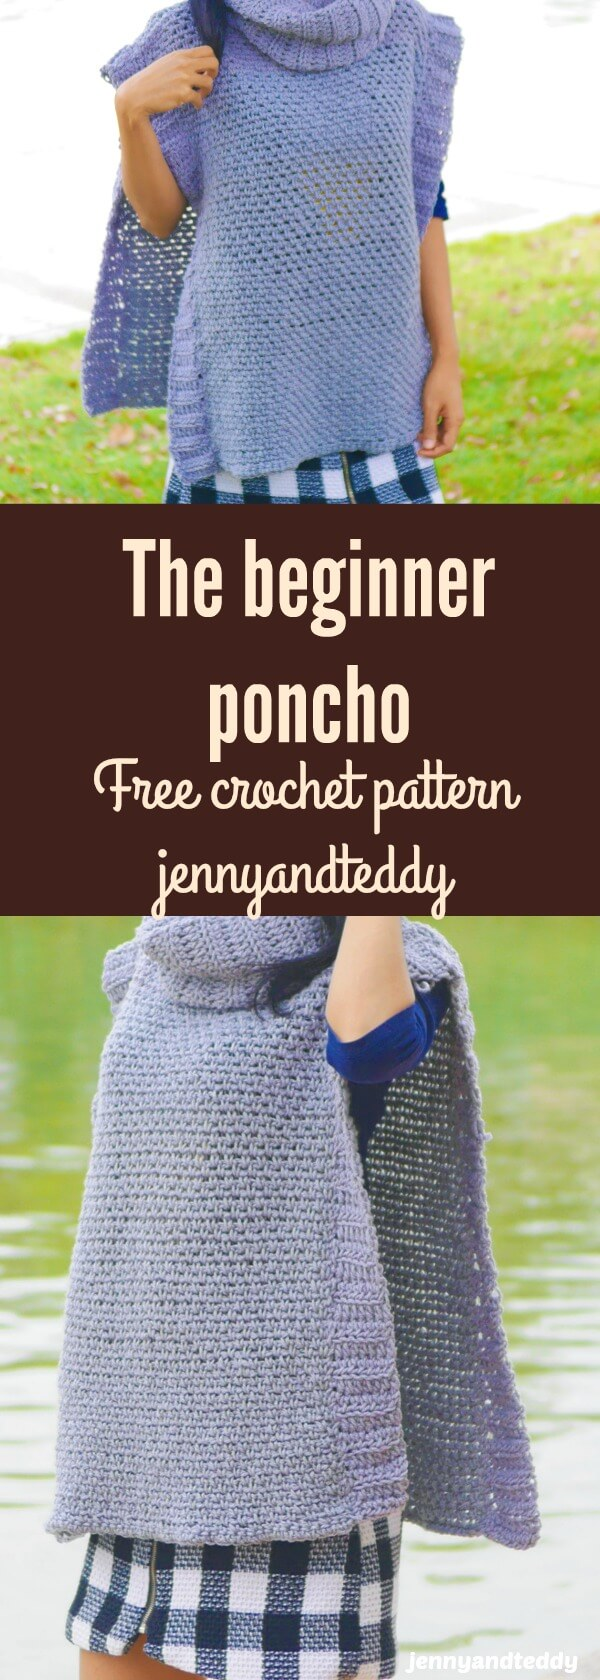 easy beginner crochet poncho free pattern